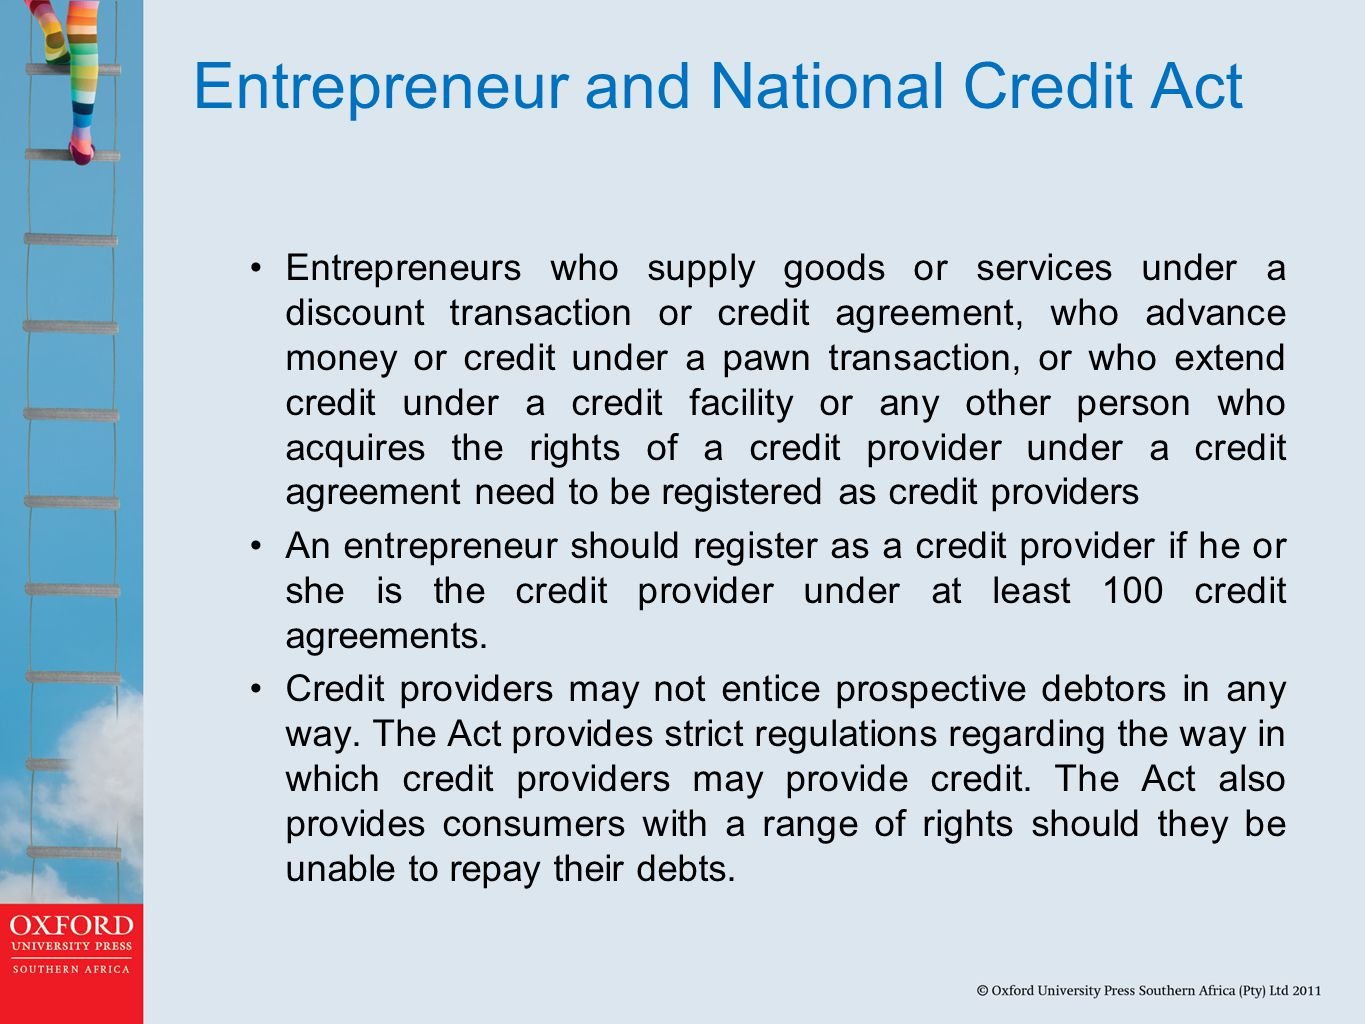 Entrepreneur and National Credit Act Entrepreneurs who supply goods or services under a discount transaction or credit agreement, who advance money or credit under a pawn transaction, or who extend credit under a credit facility or any other person who acquires the rights of a credit provider under a credit agreement need to be registered as credit providers An entrepreneur should register as a credit provider if he or she is the credit provider under at least 100 credit agreements.